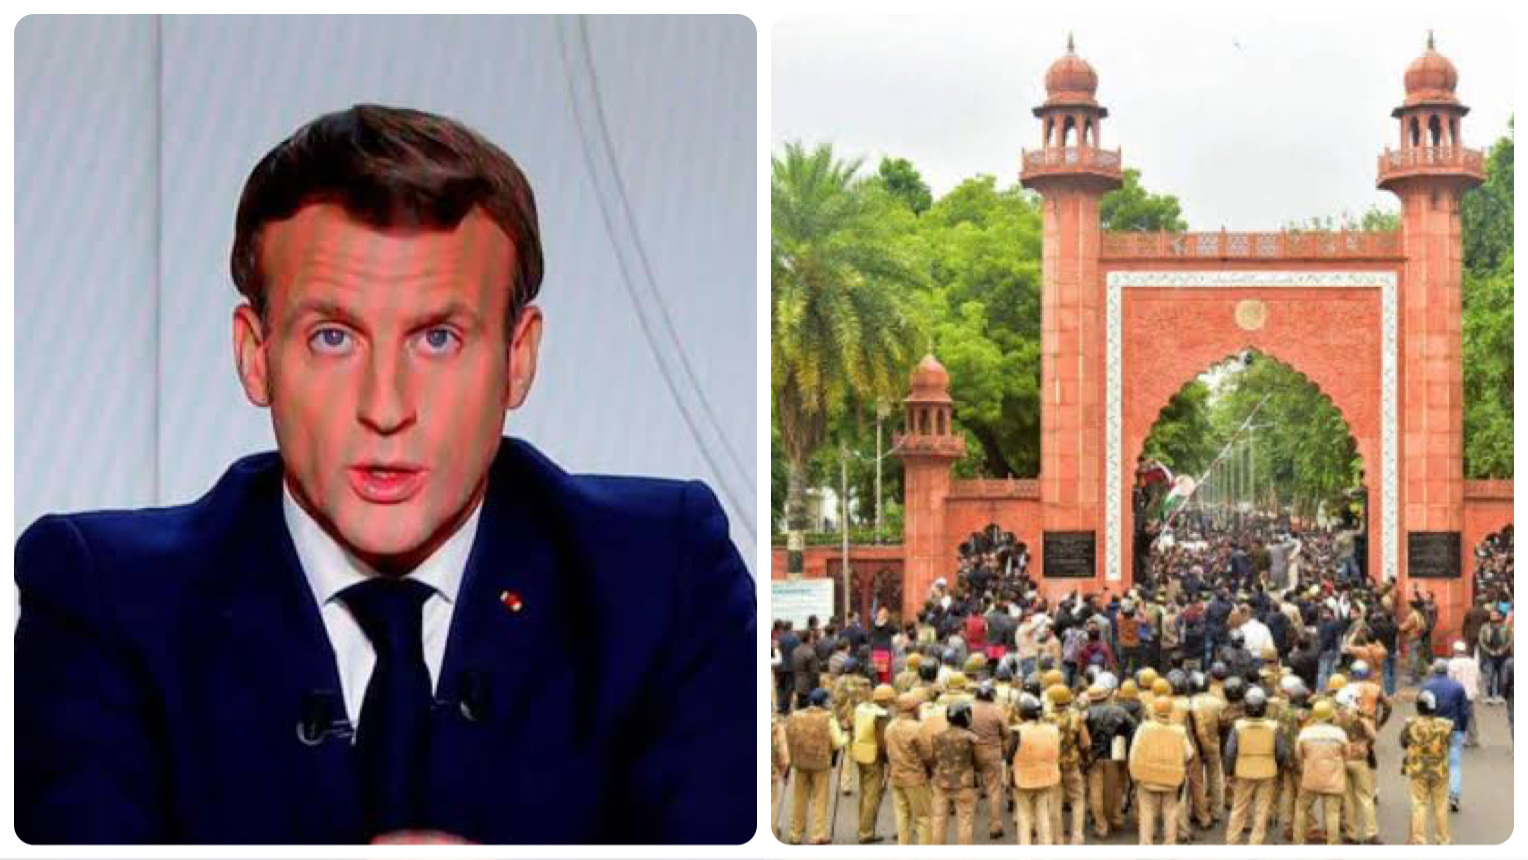 AMU organises protest against President of France for 'Islamophobia'